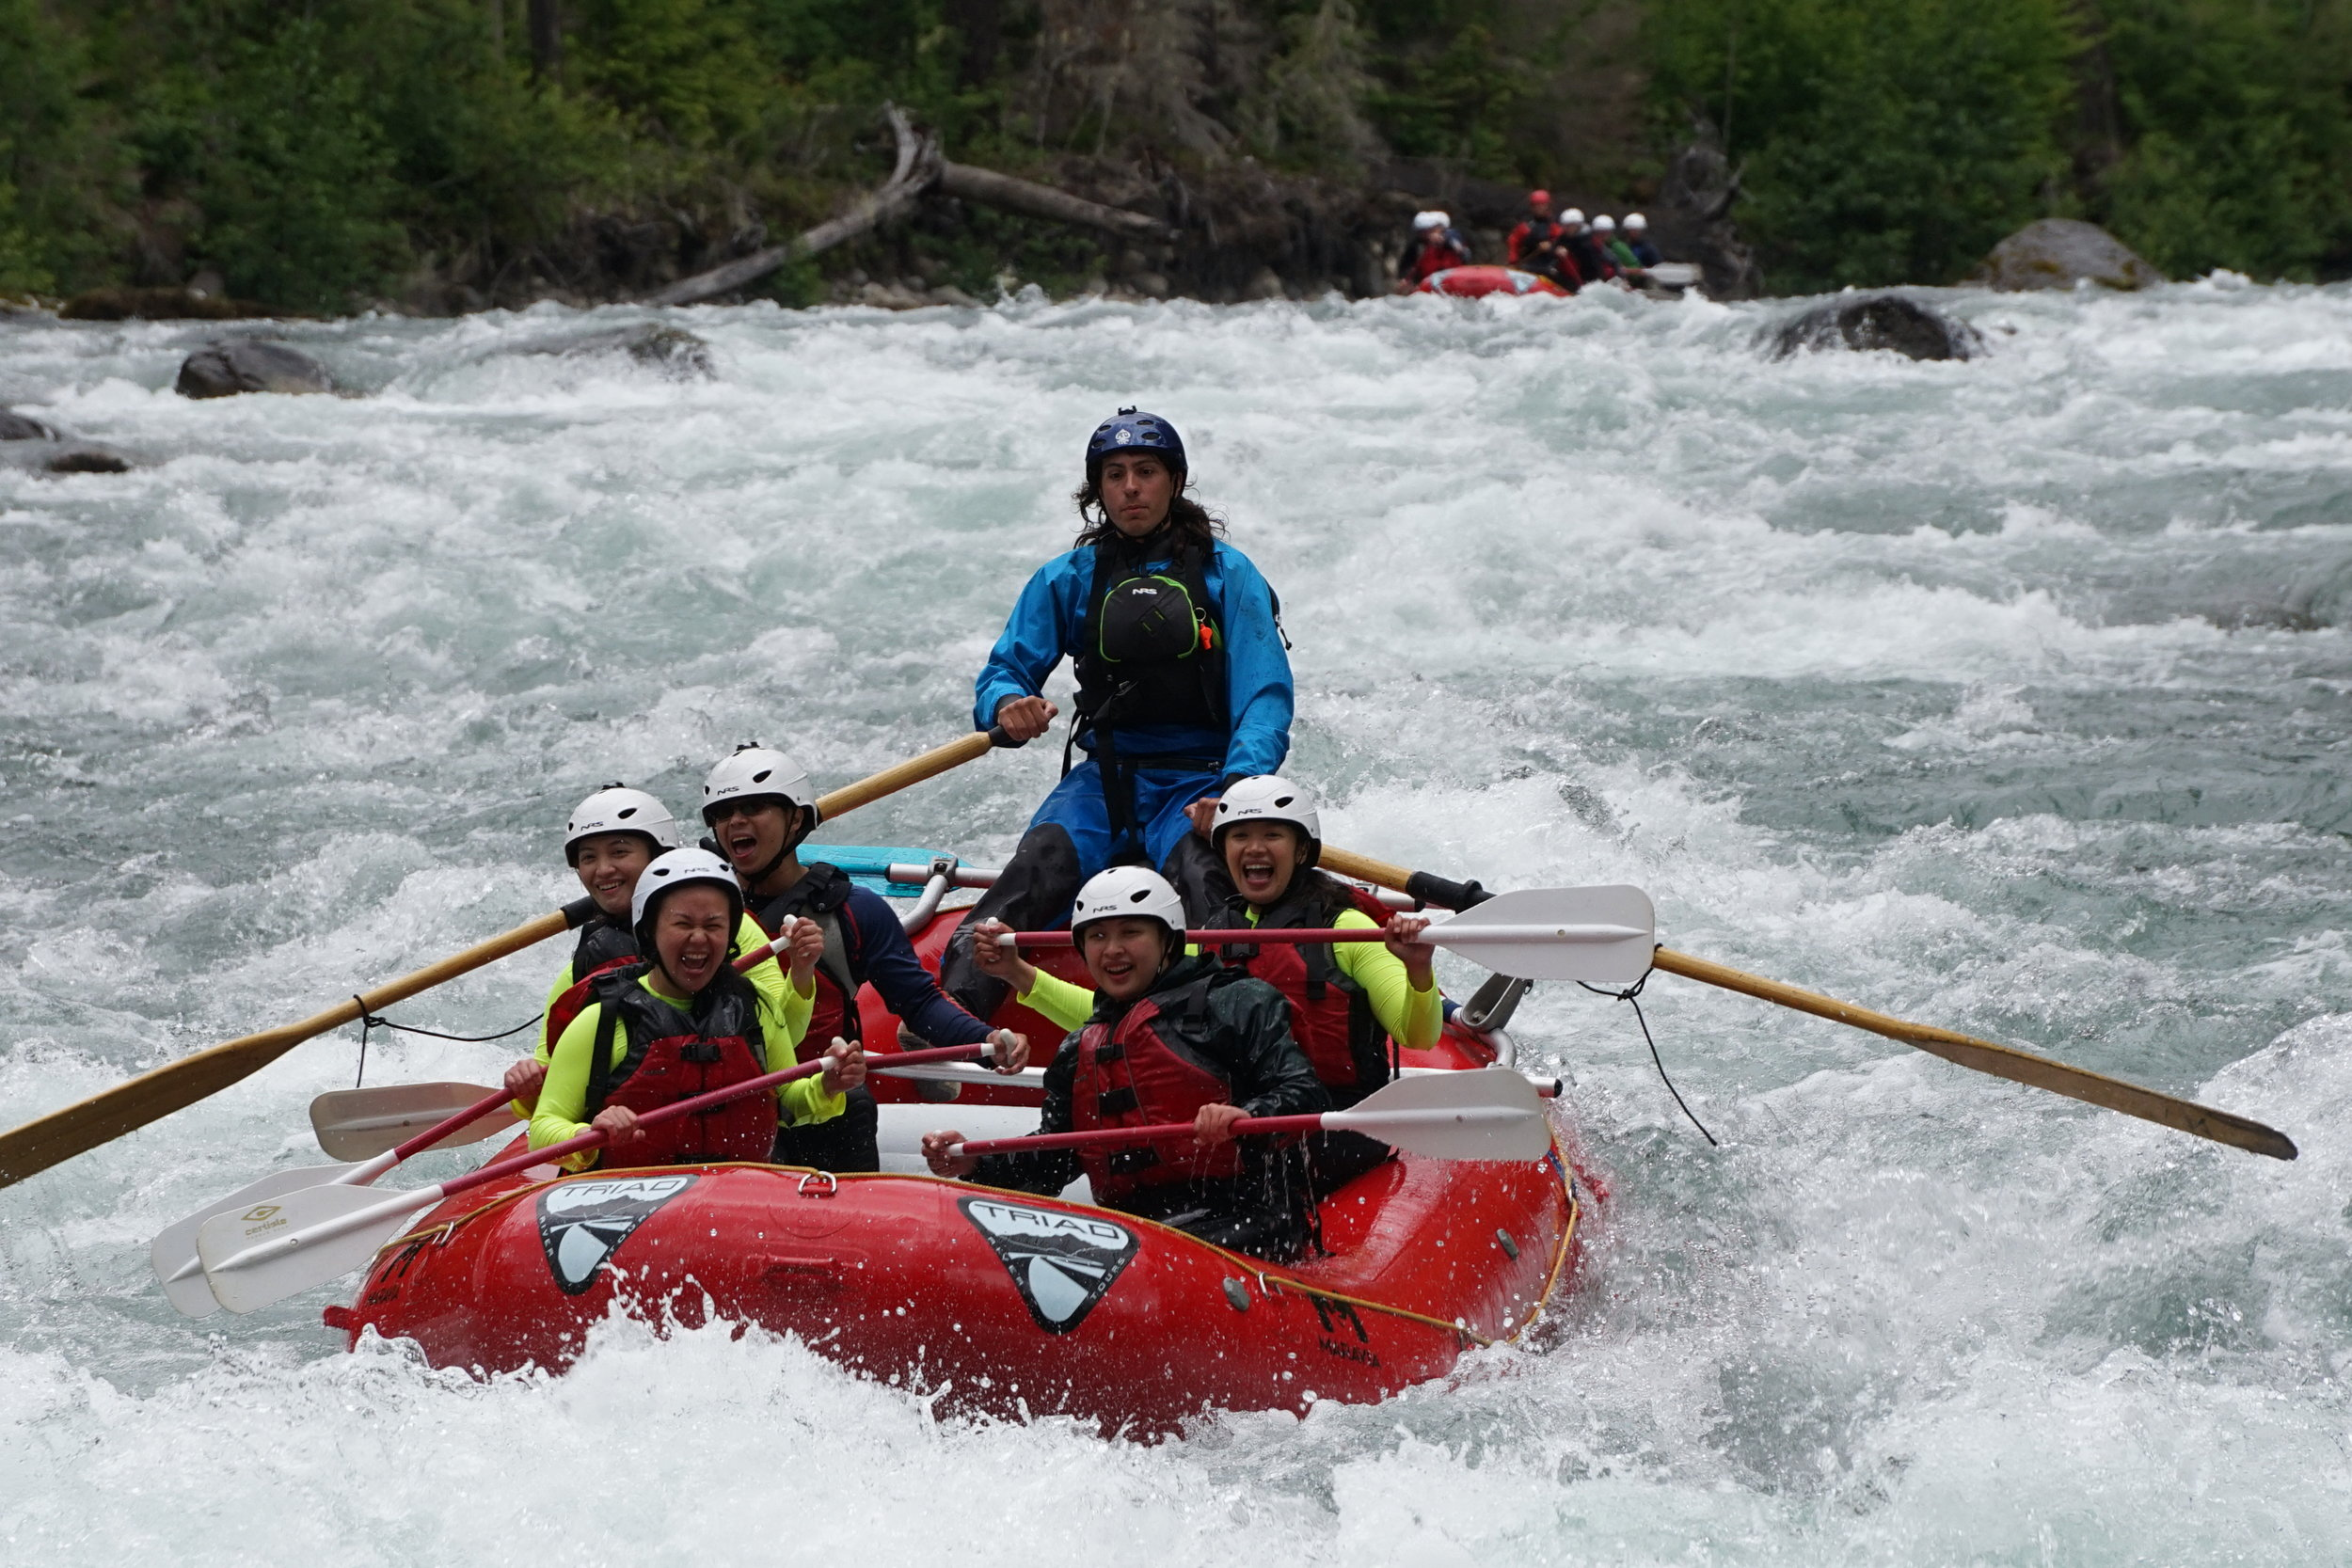 rafting stern mount paddle assist.JPG